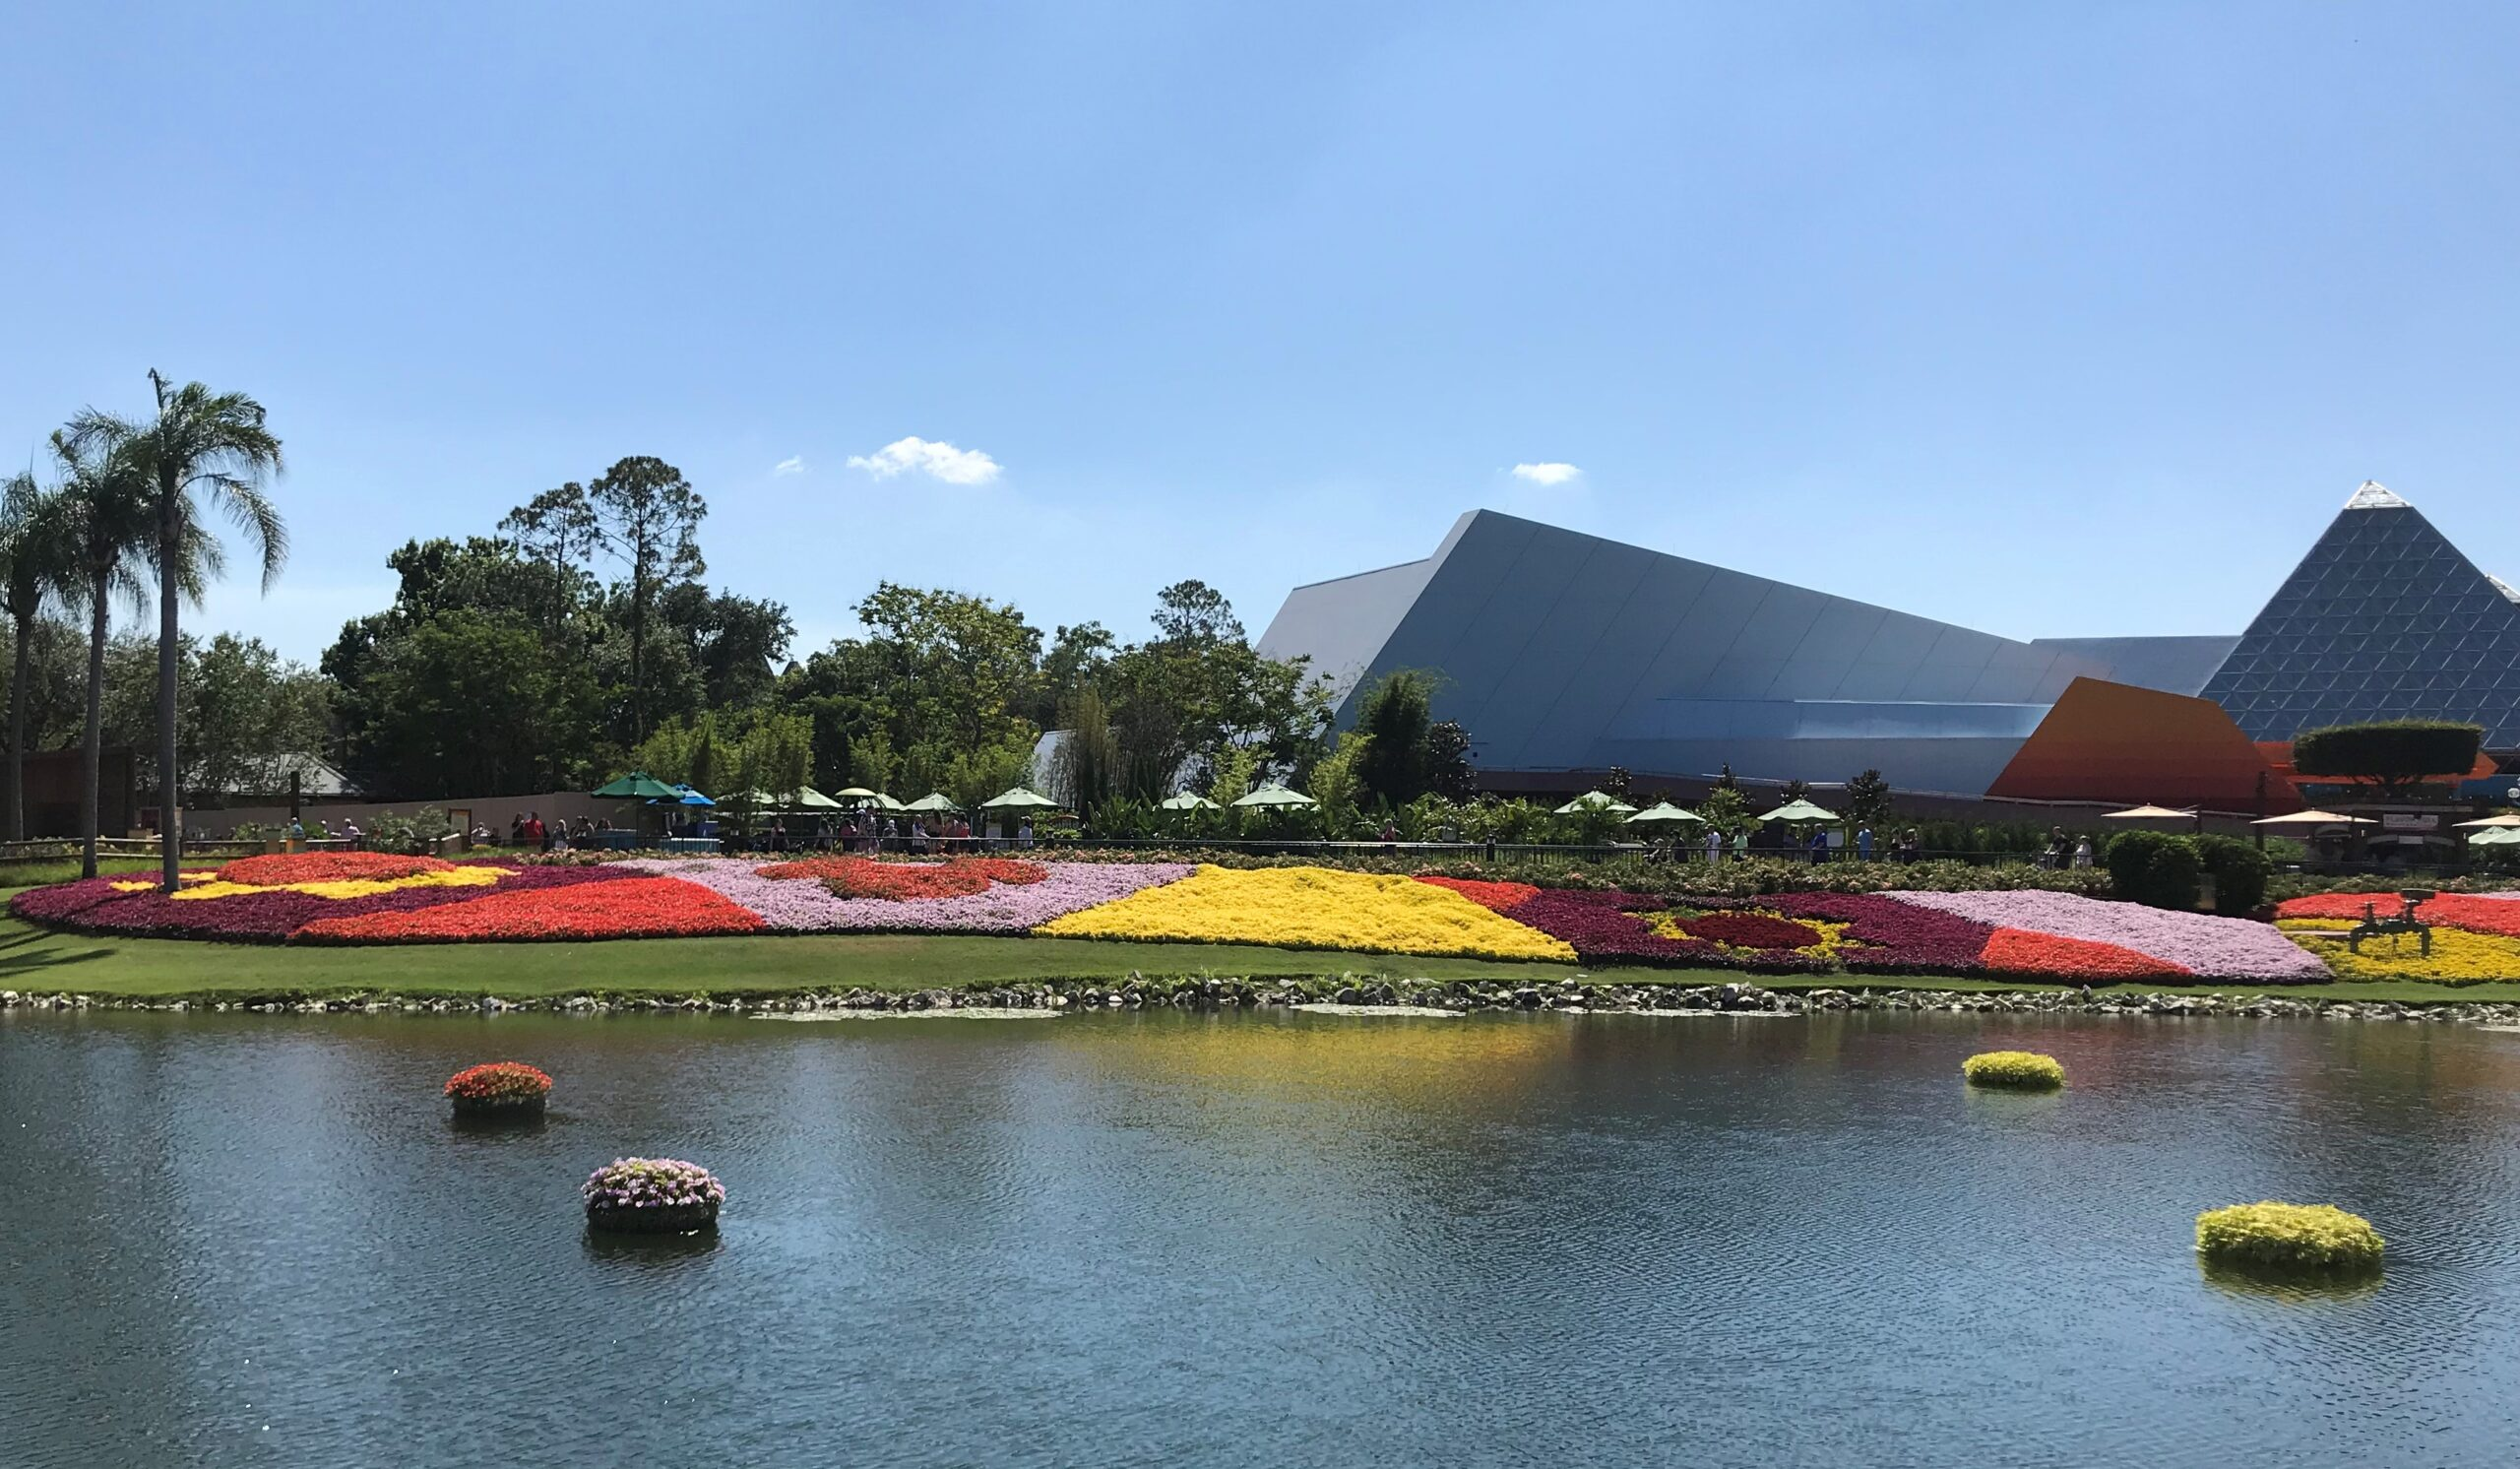 All You Need to Know About the 2020 Epcot International Flower and Garden Festival